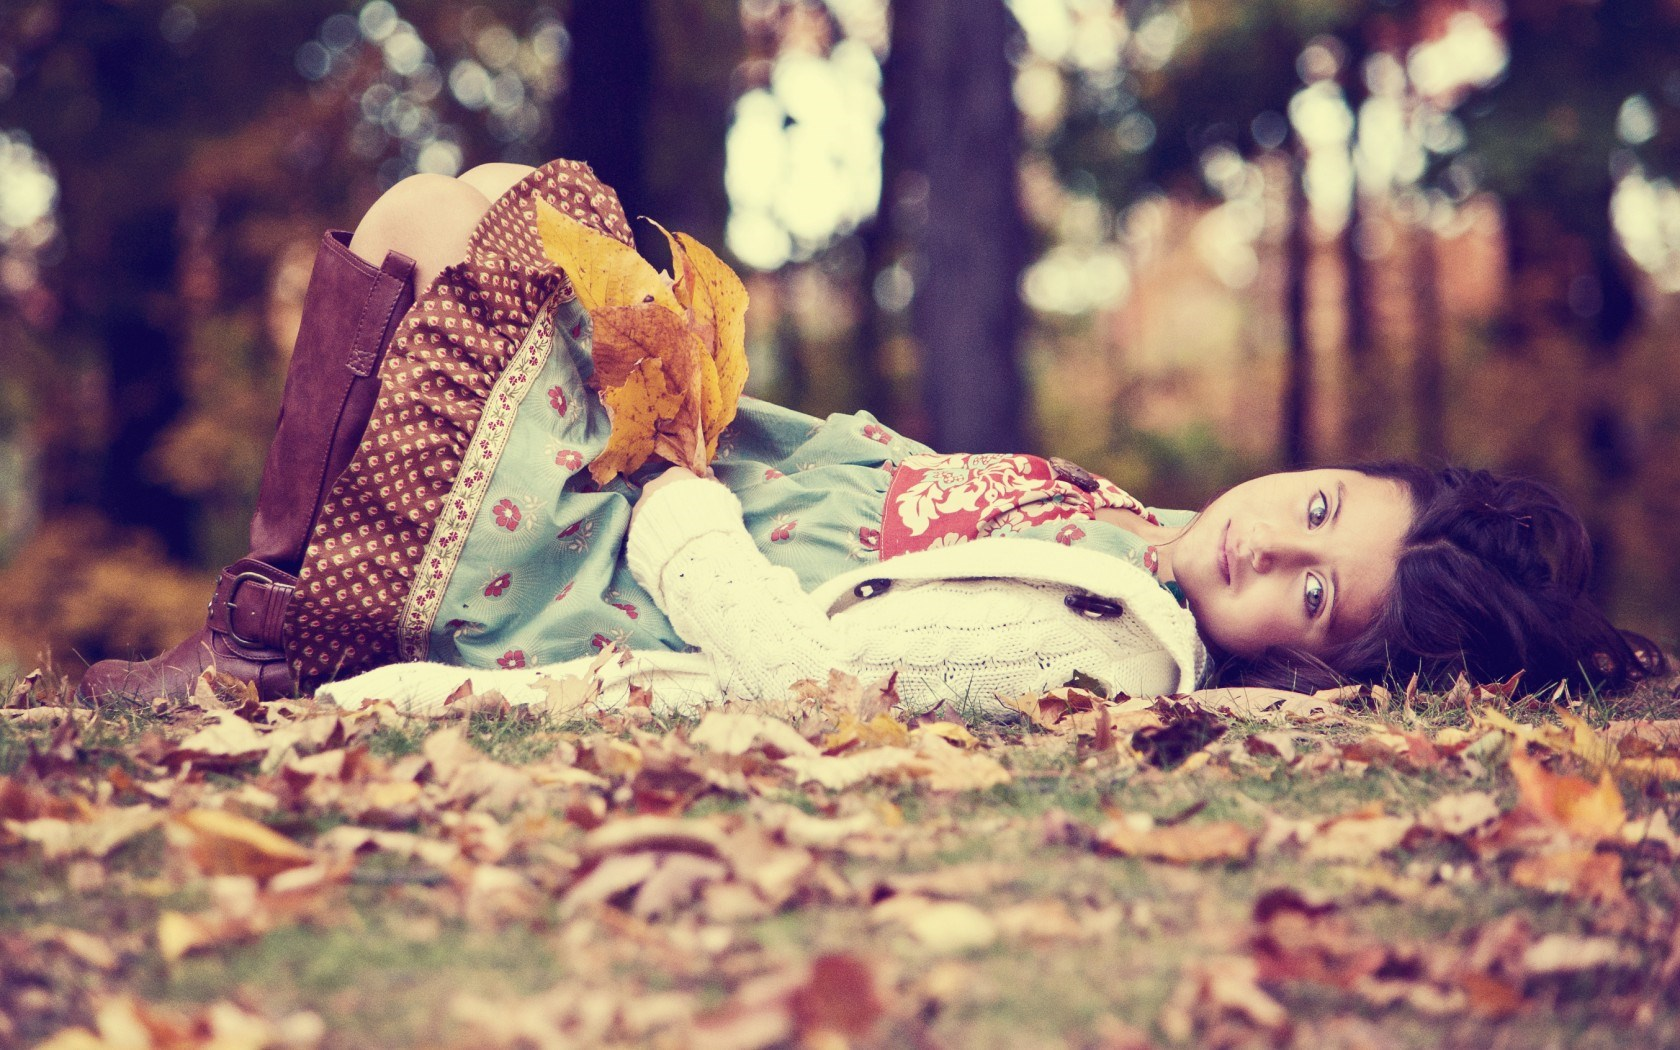 Mood Child Girl Dress Boots Nature Leaves Photo